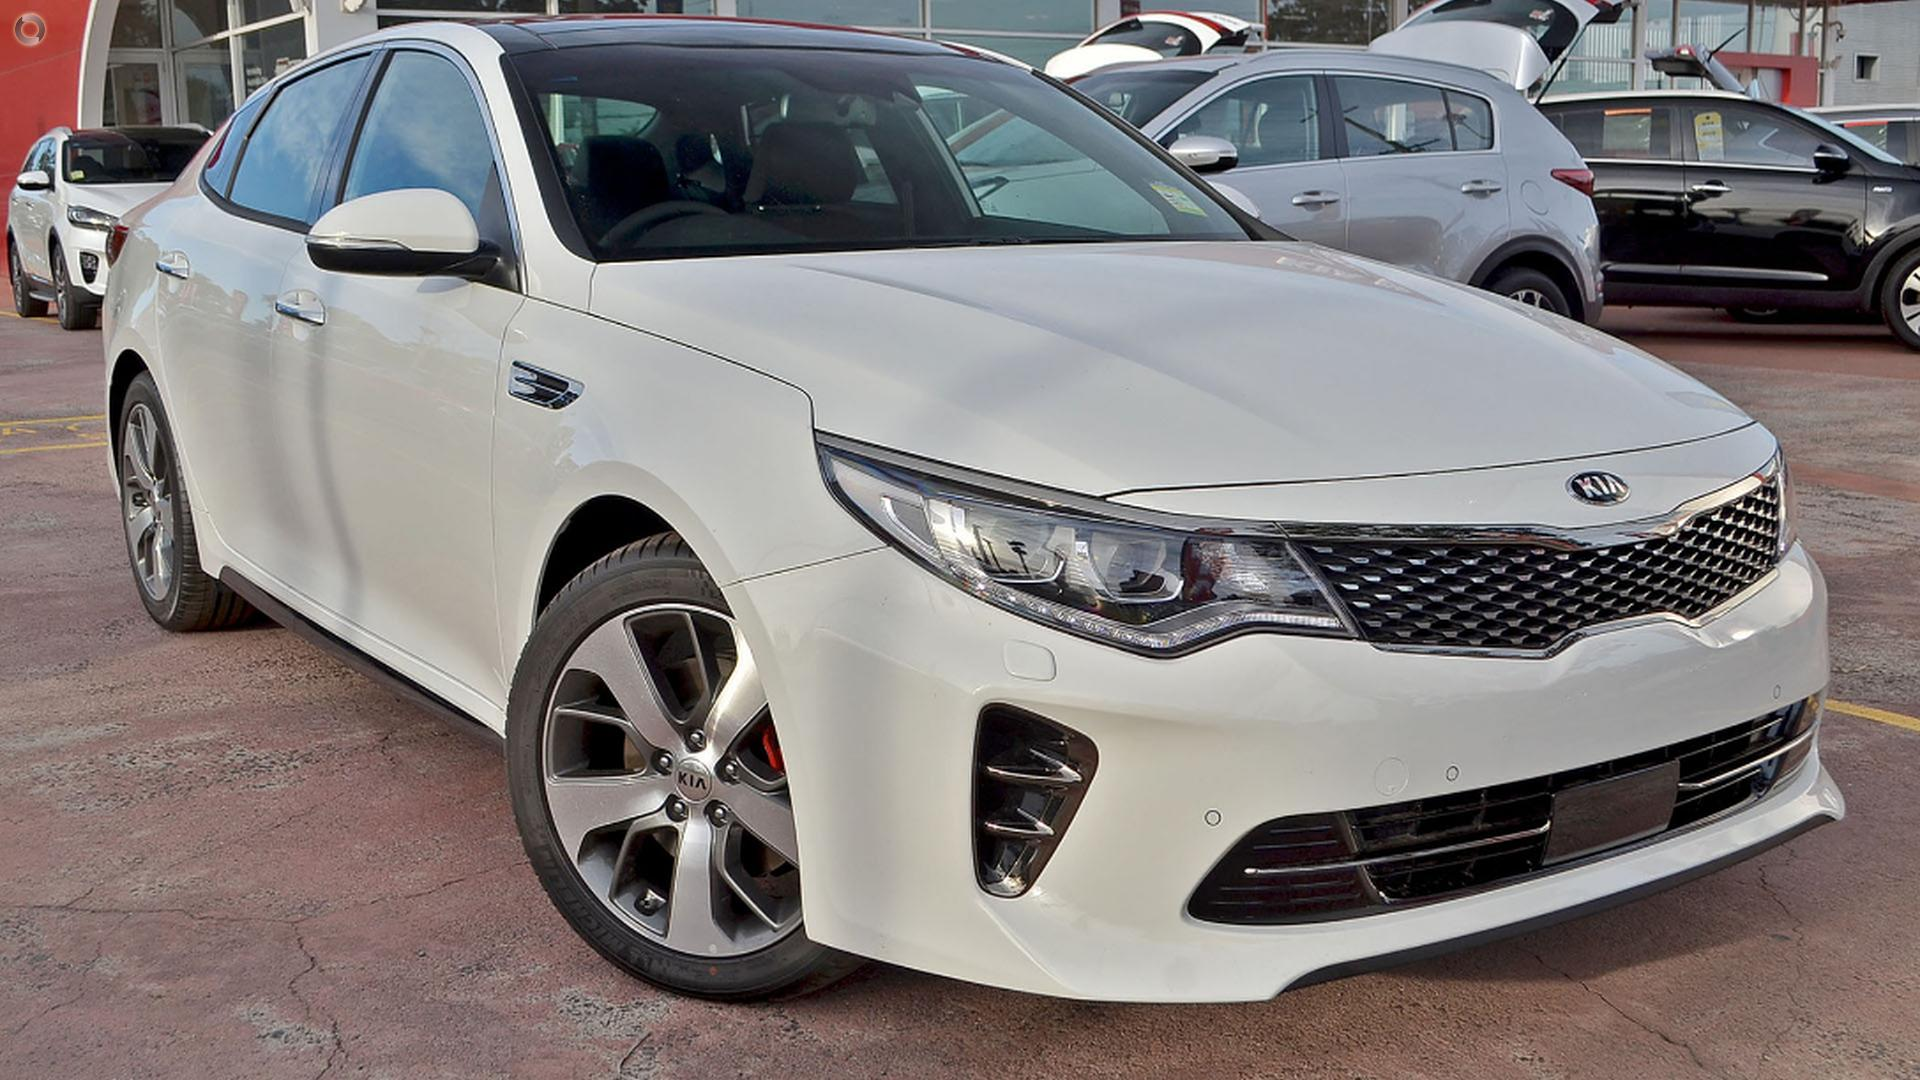 2018 Kia Optima Gt Jf Berwick Motor Group HD Style Wallpapers Download free beautiful images and photos HD [prarshipsa.tk]